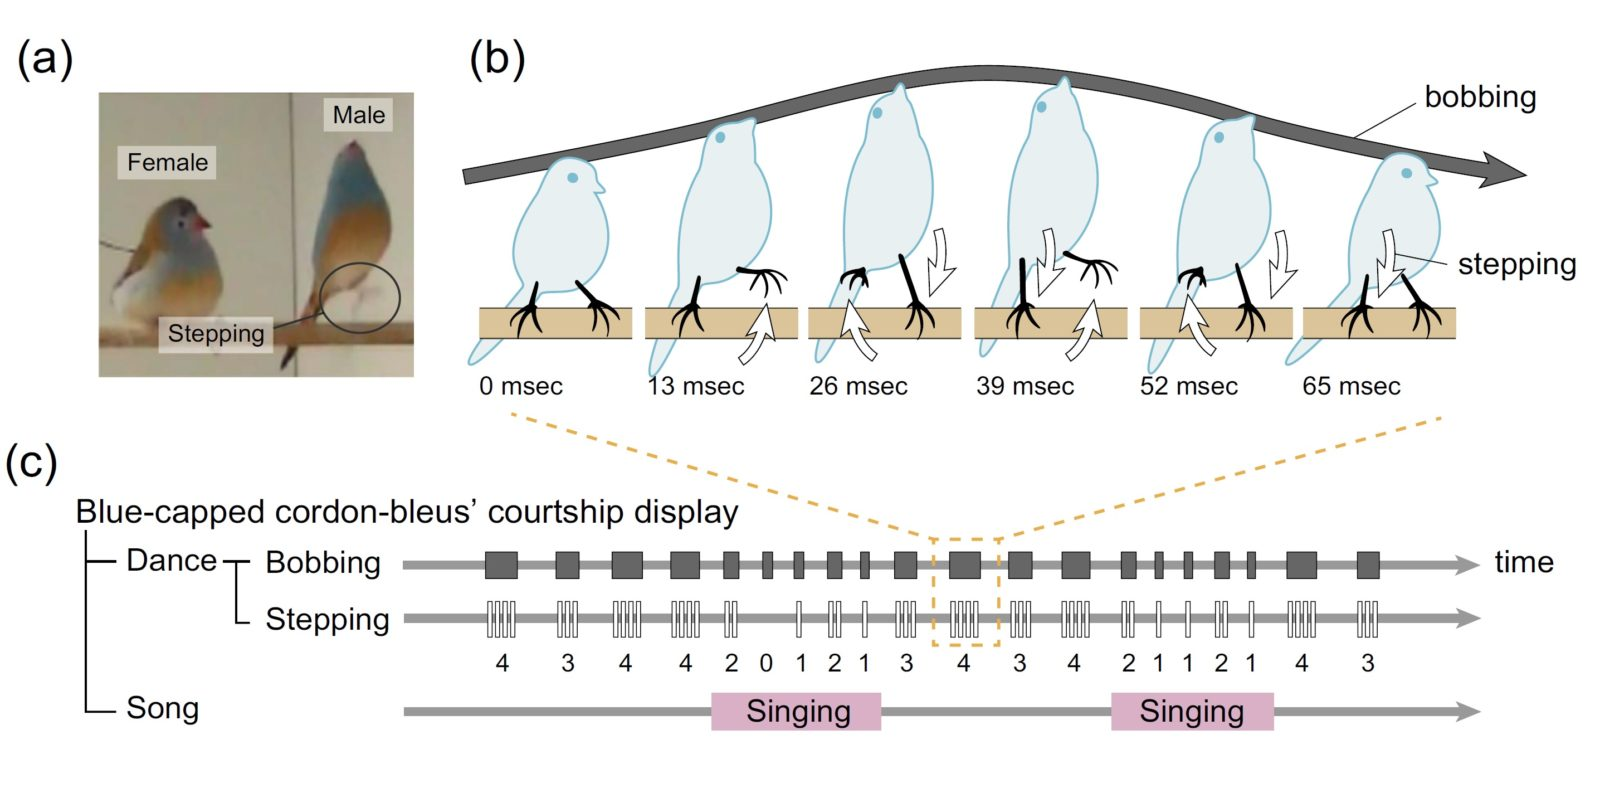 Courtship display in blue-capped cordon-bleus. (a) When blue-capped cordon-bleus perform courtship display, (b) they simultaneous bob and step, and (c) sing at certain times. Bobbing (shaded bars) with multiple steps (white bars) is repeated often, and usually singing occurs several times. White and shaded arrows in (b) correspond with the colour of bars in (c). Note the number of steps in (c) involved in each bobbing action.